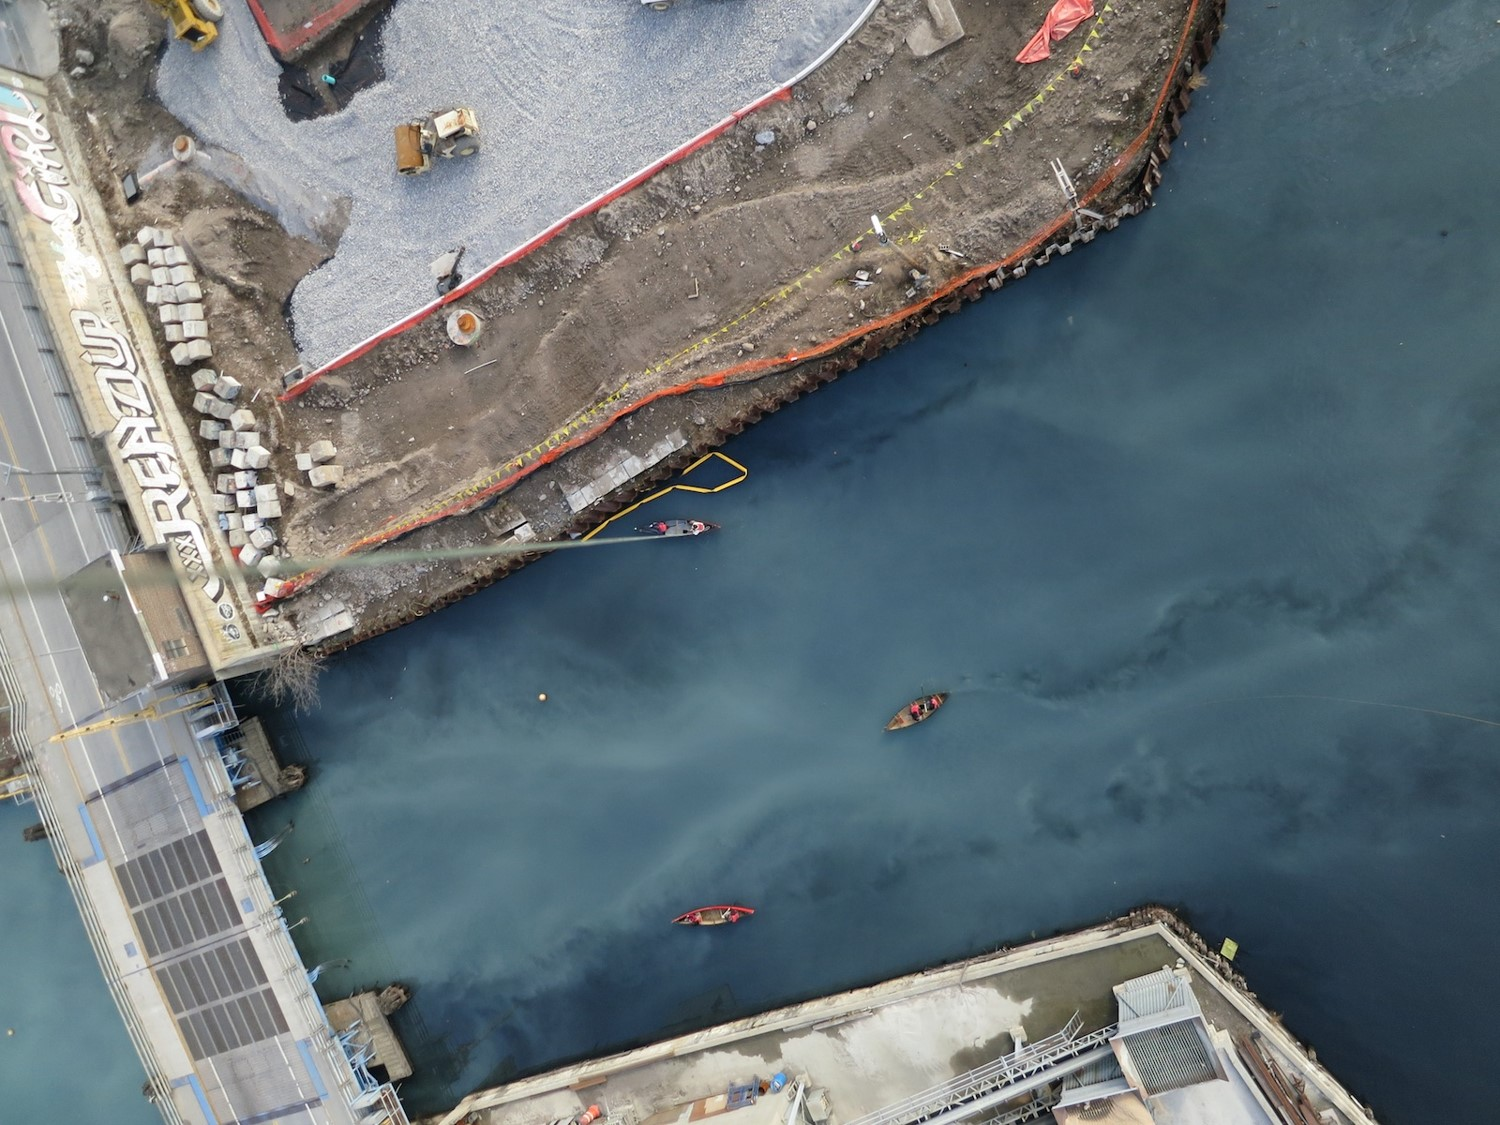 Aerial photograph of the Gowanus Canal in Brookly, NY post hurricane Sandy